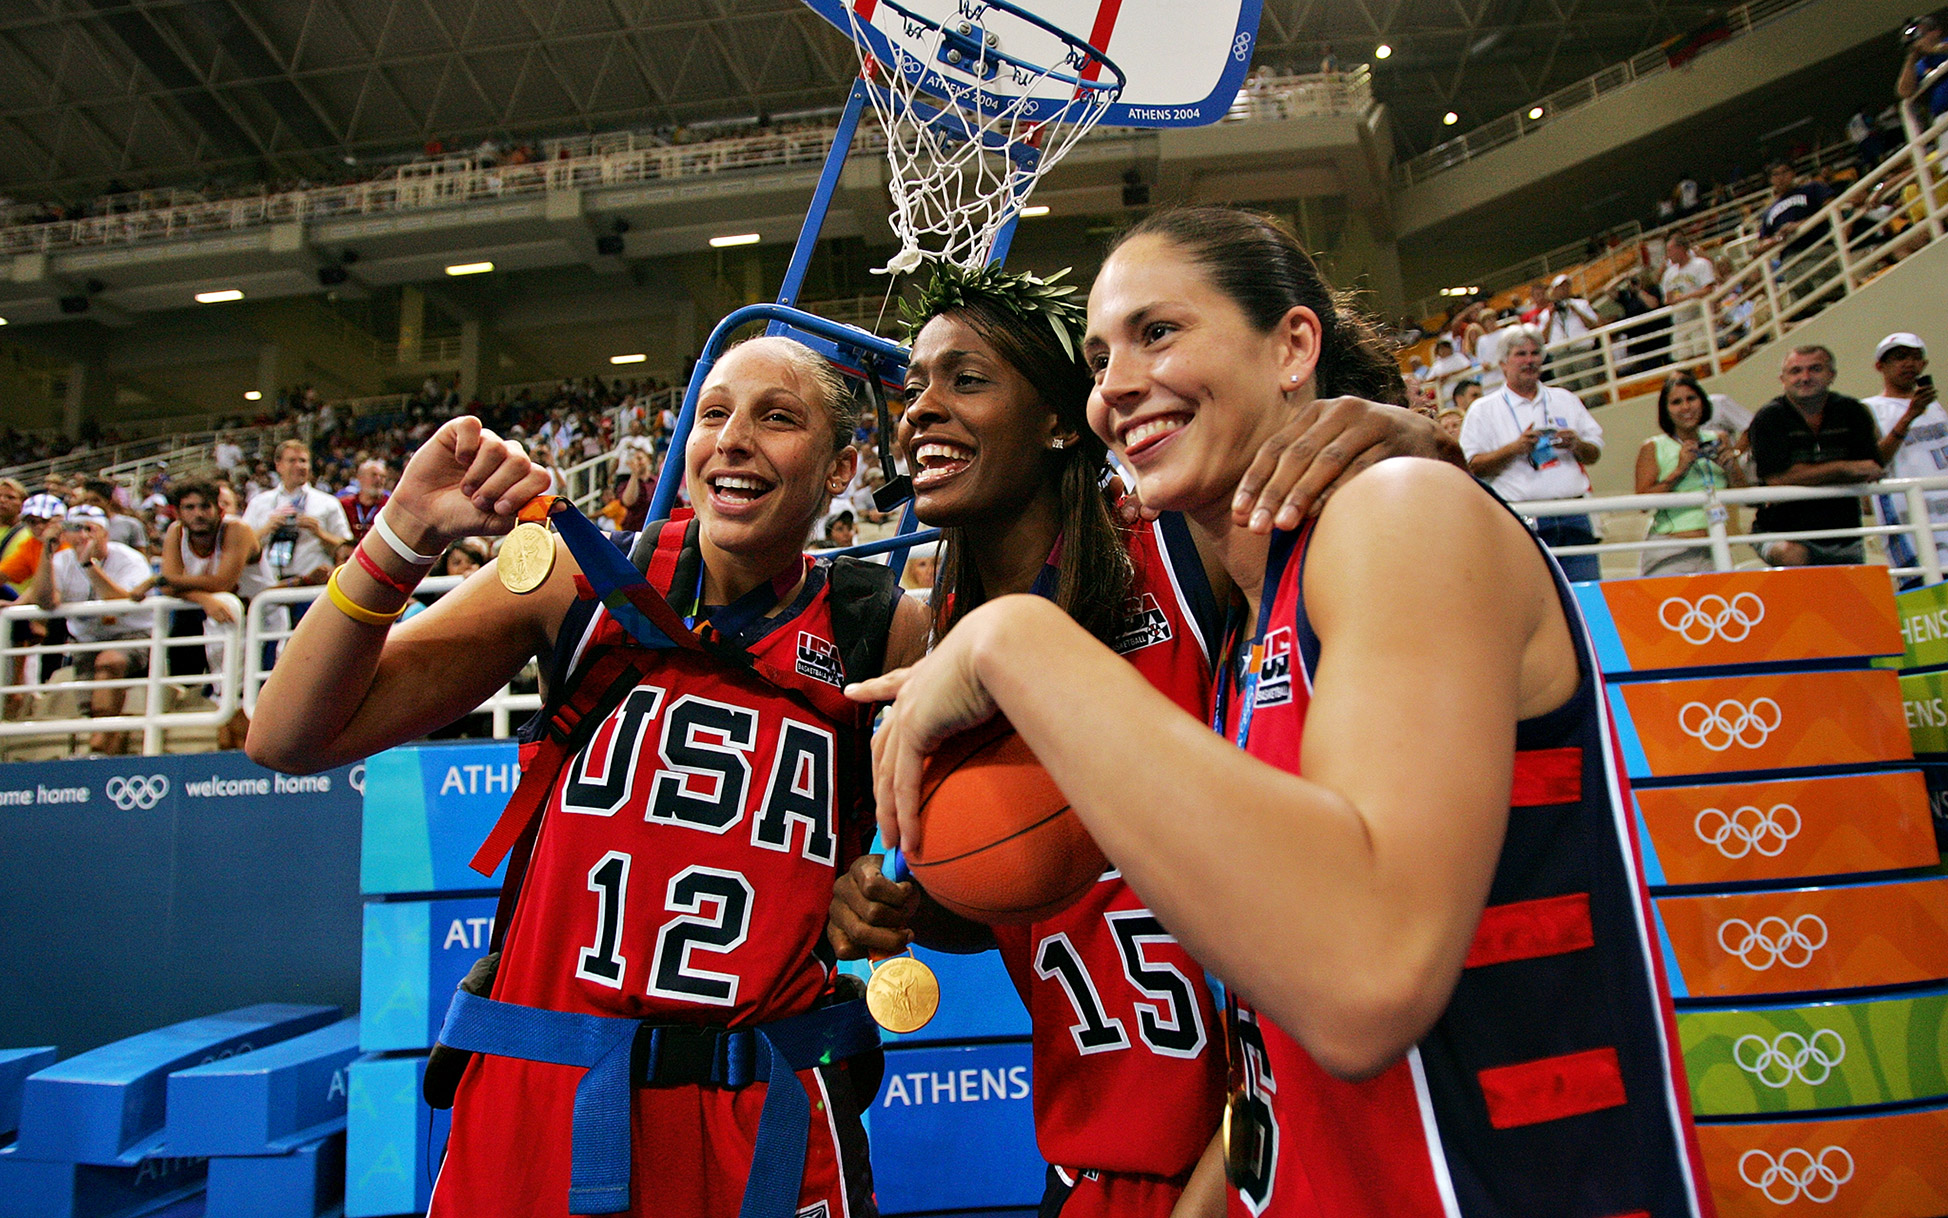 Pursuing Perfection: Diana Taurasi